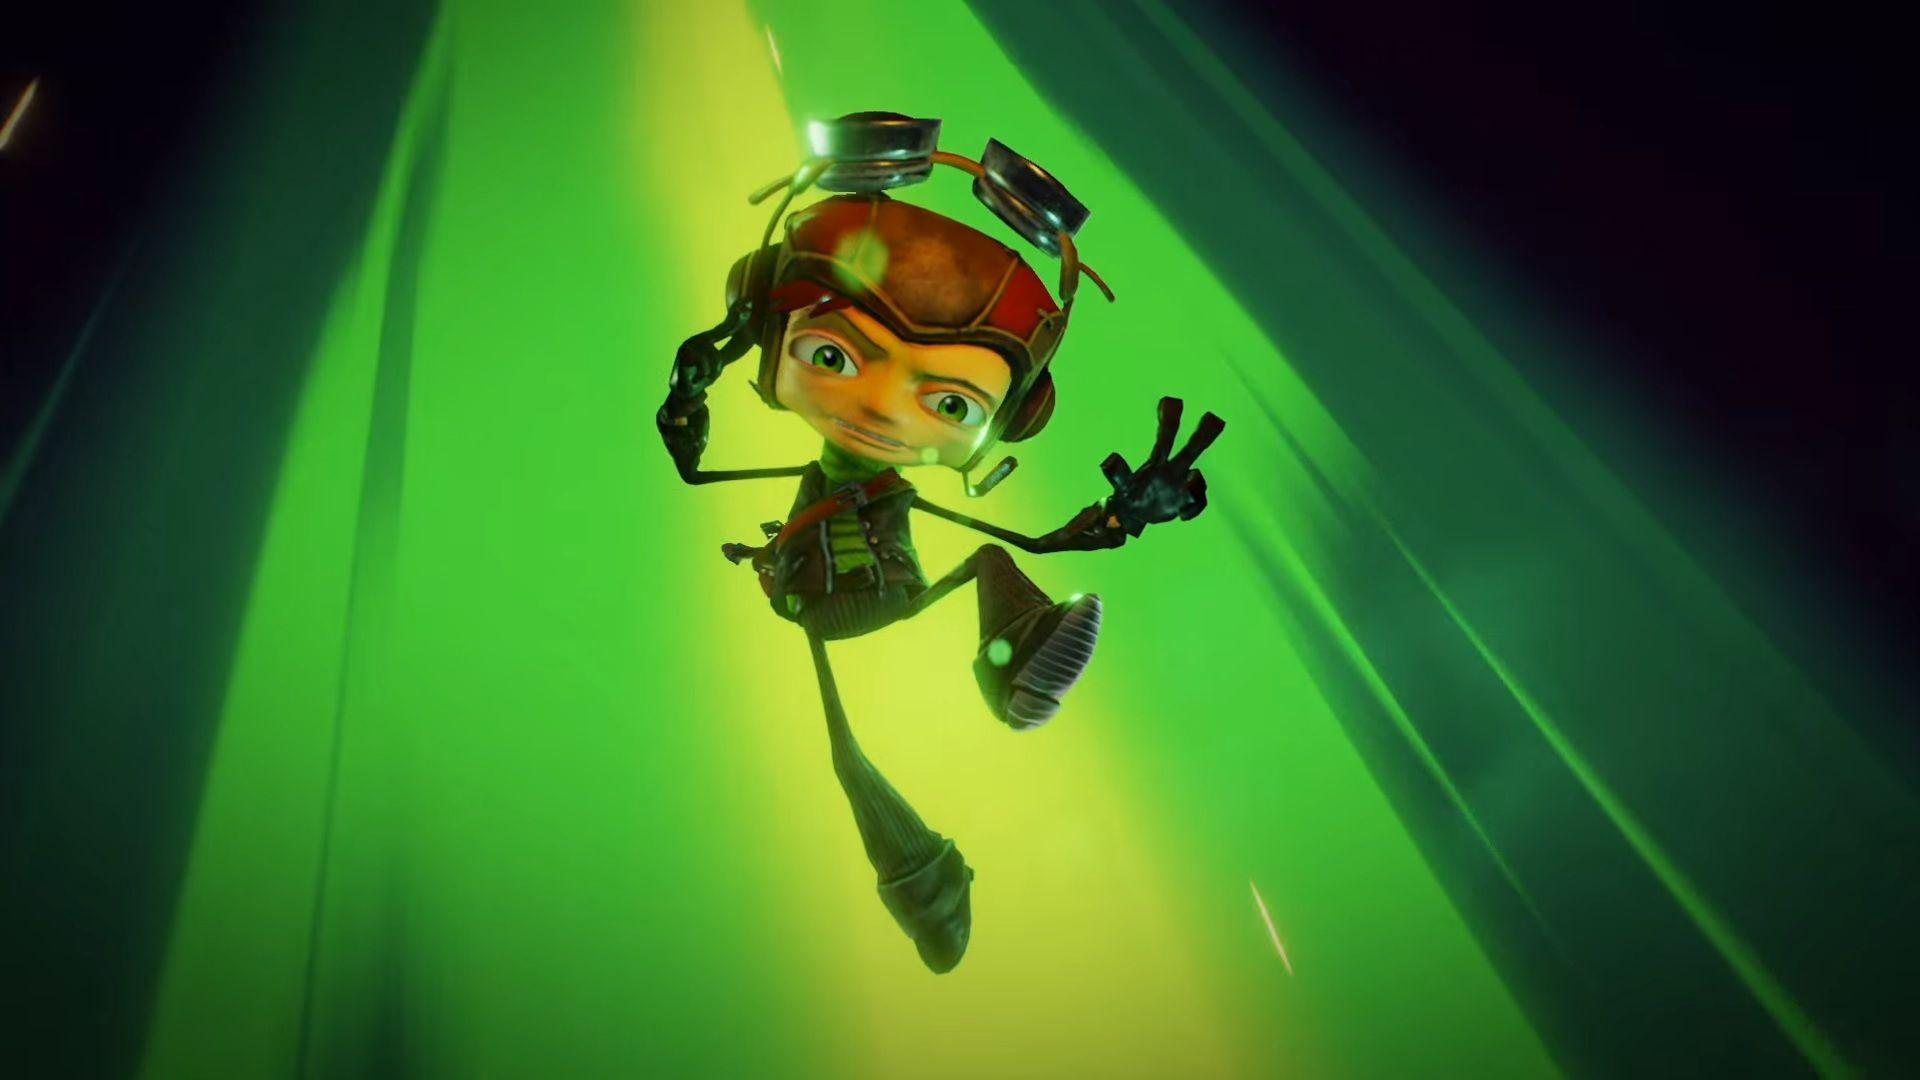 The new gameplay from Psychonauts 2 shows the exploration of the characters' minds